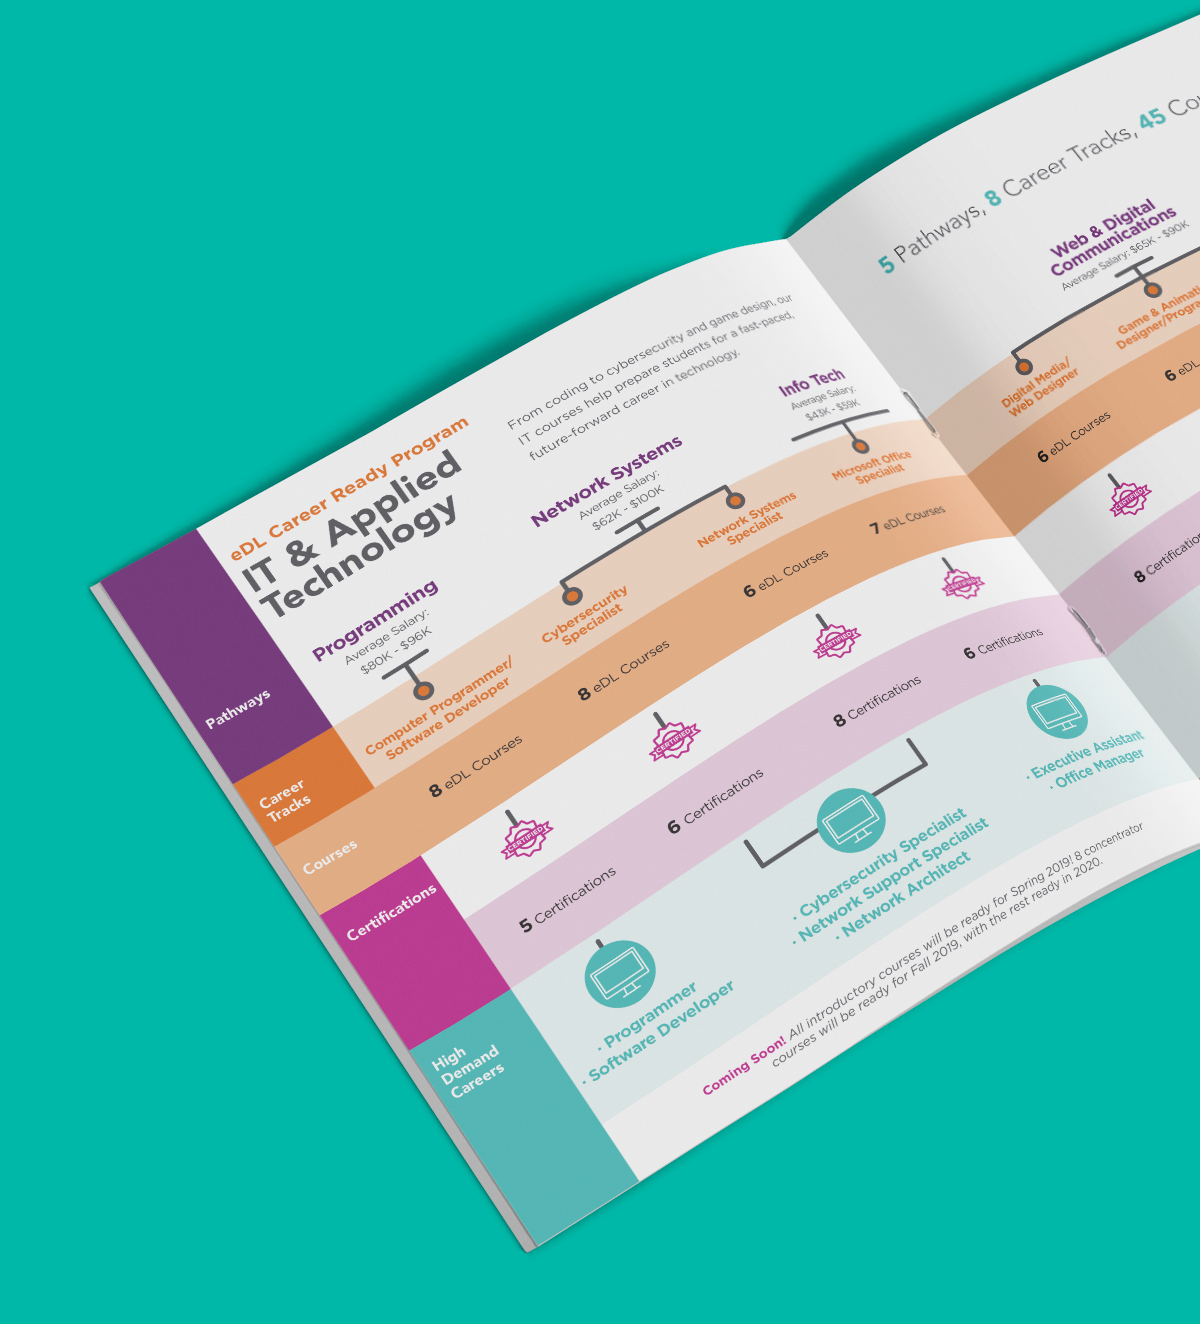 E-dynamic Learning Graphic Design Booklet on a teal background